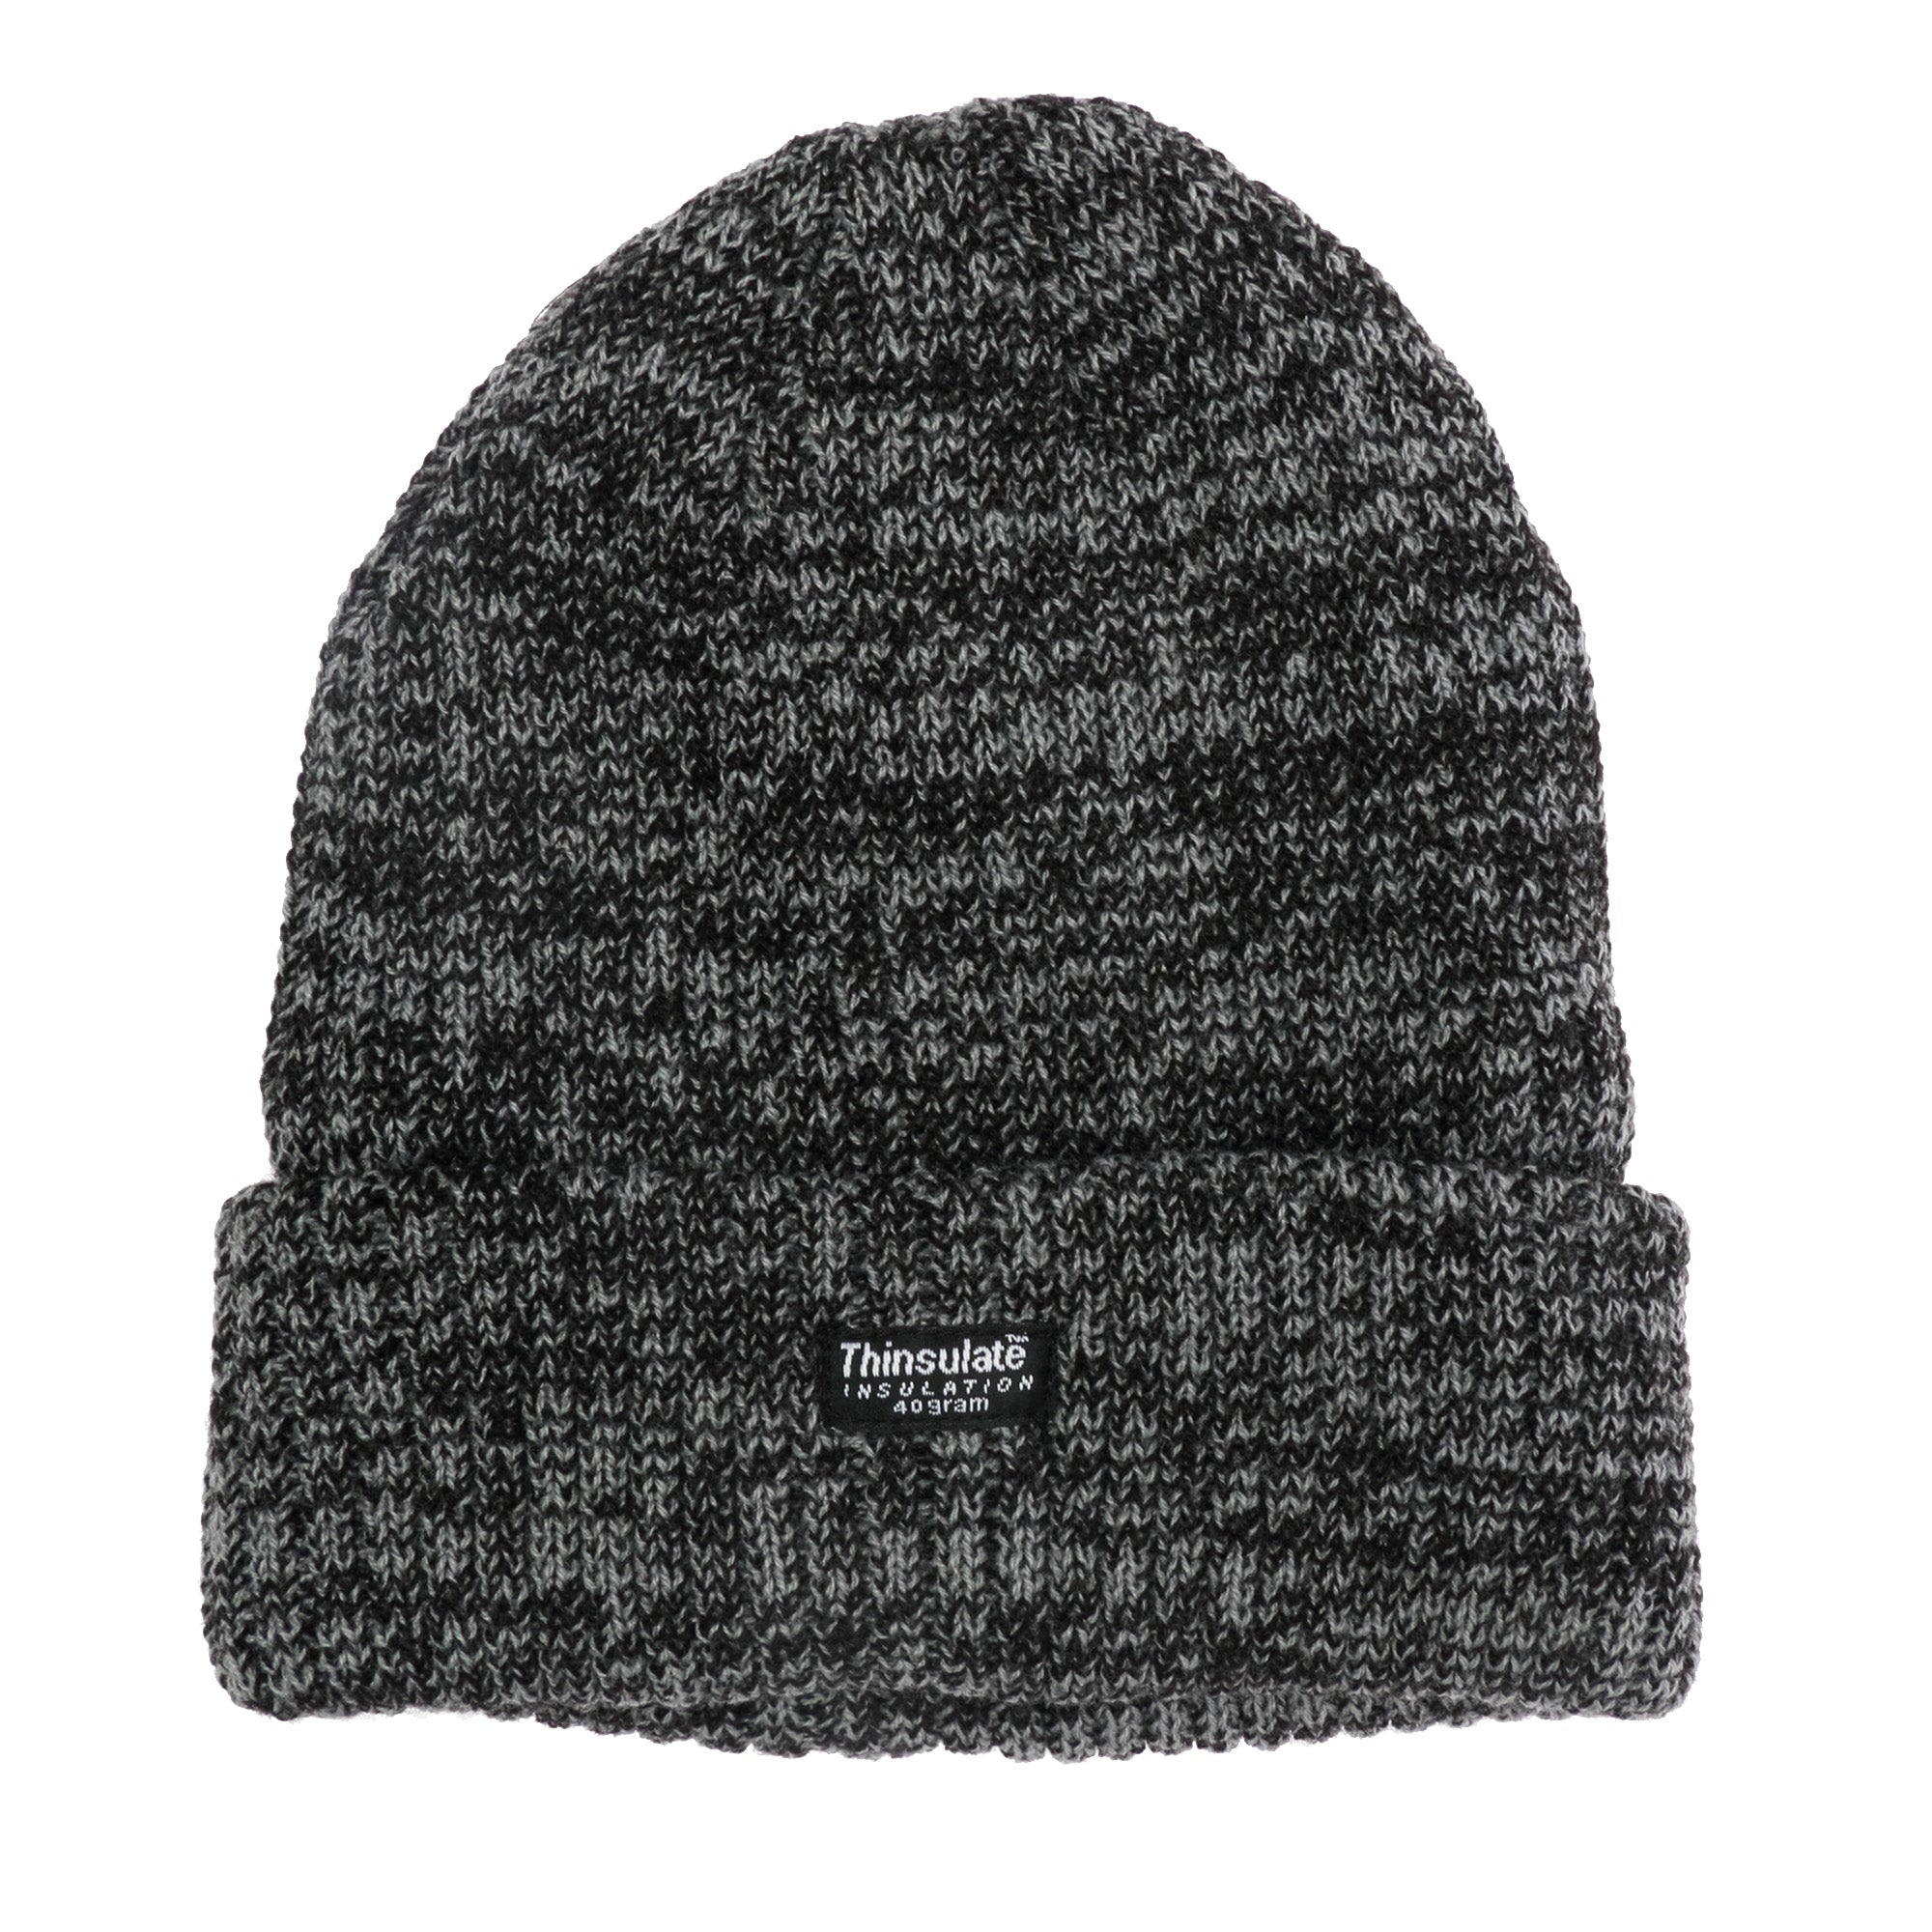 OCTAVE Mens Melange Warm Thinsulate Thermal Lined Heavy Knit Winter Hat